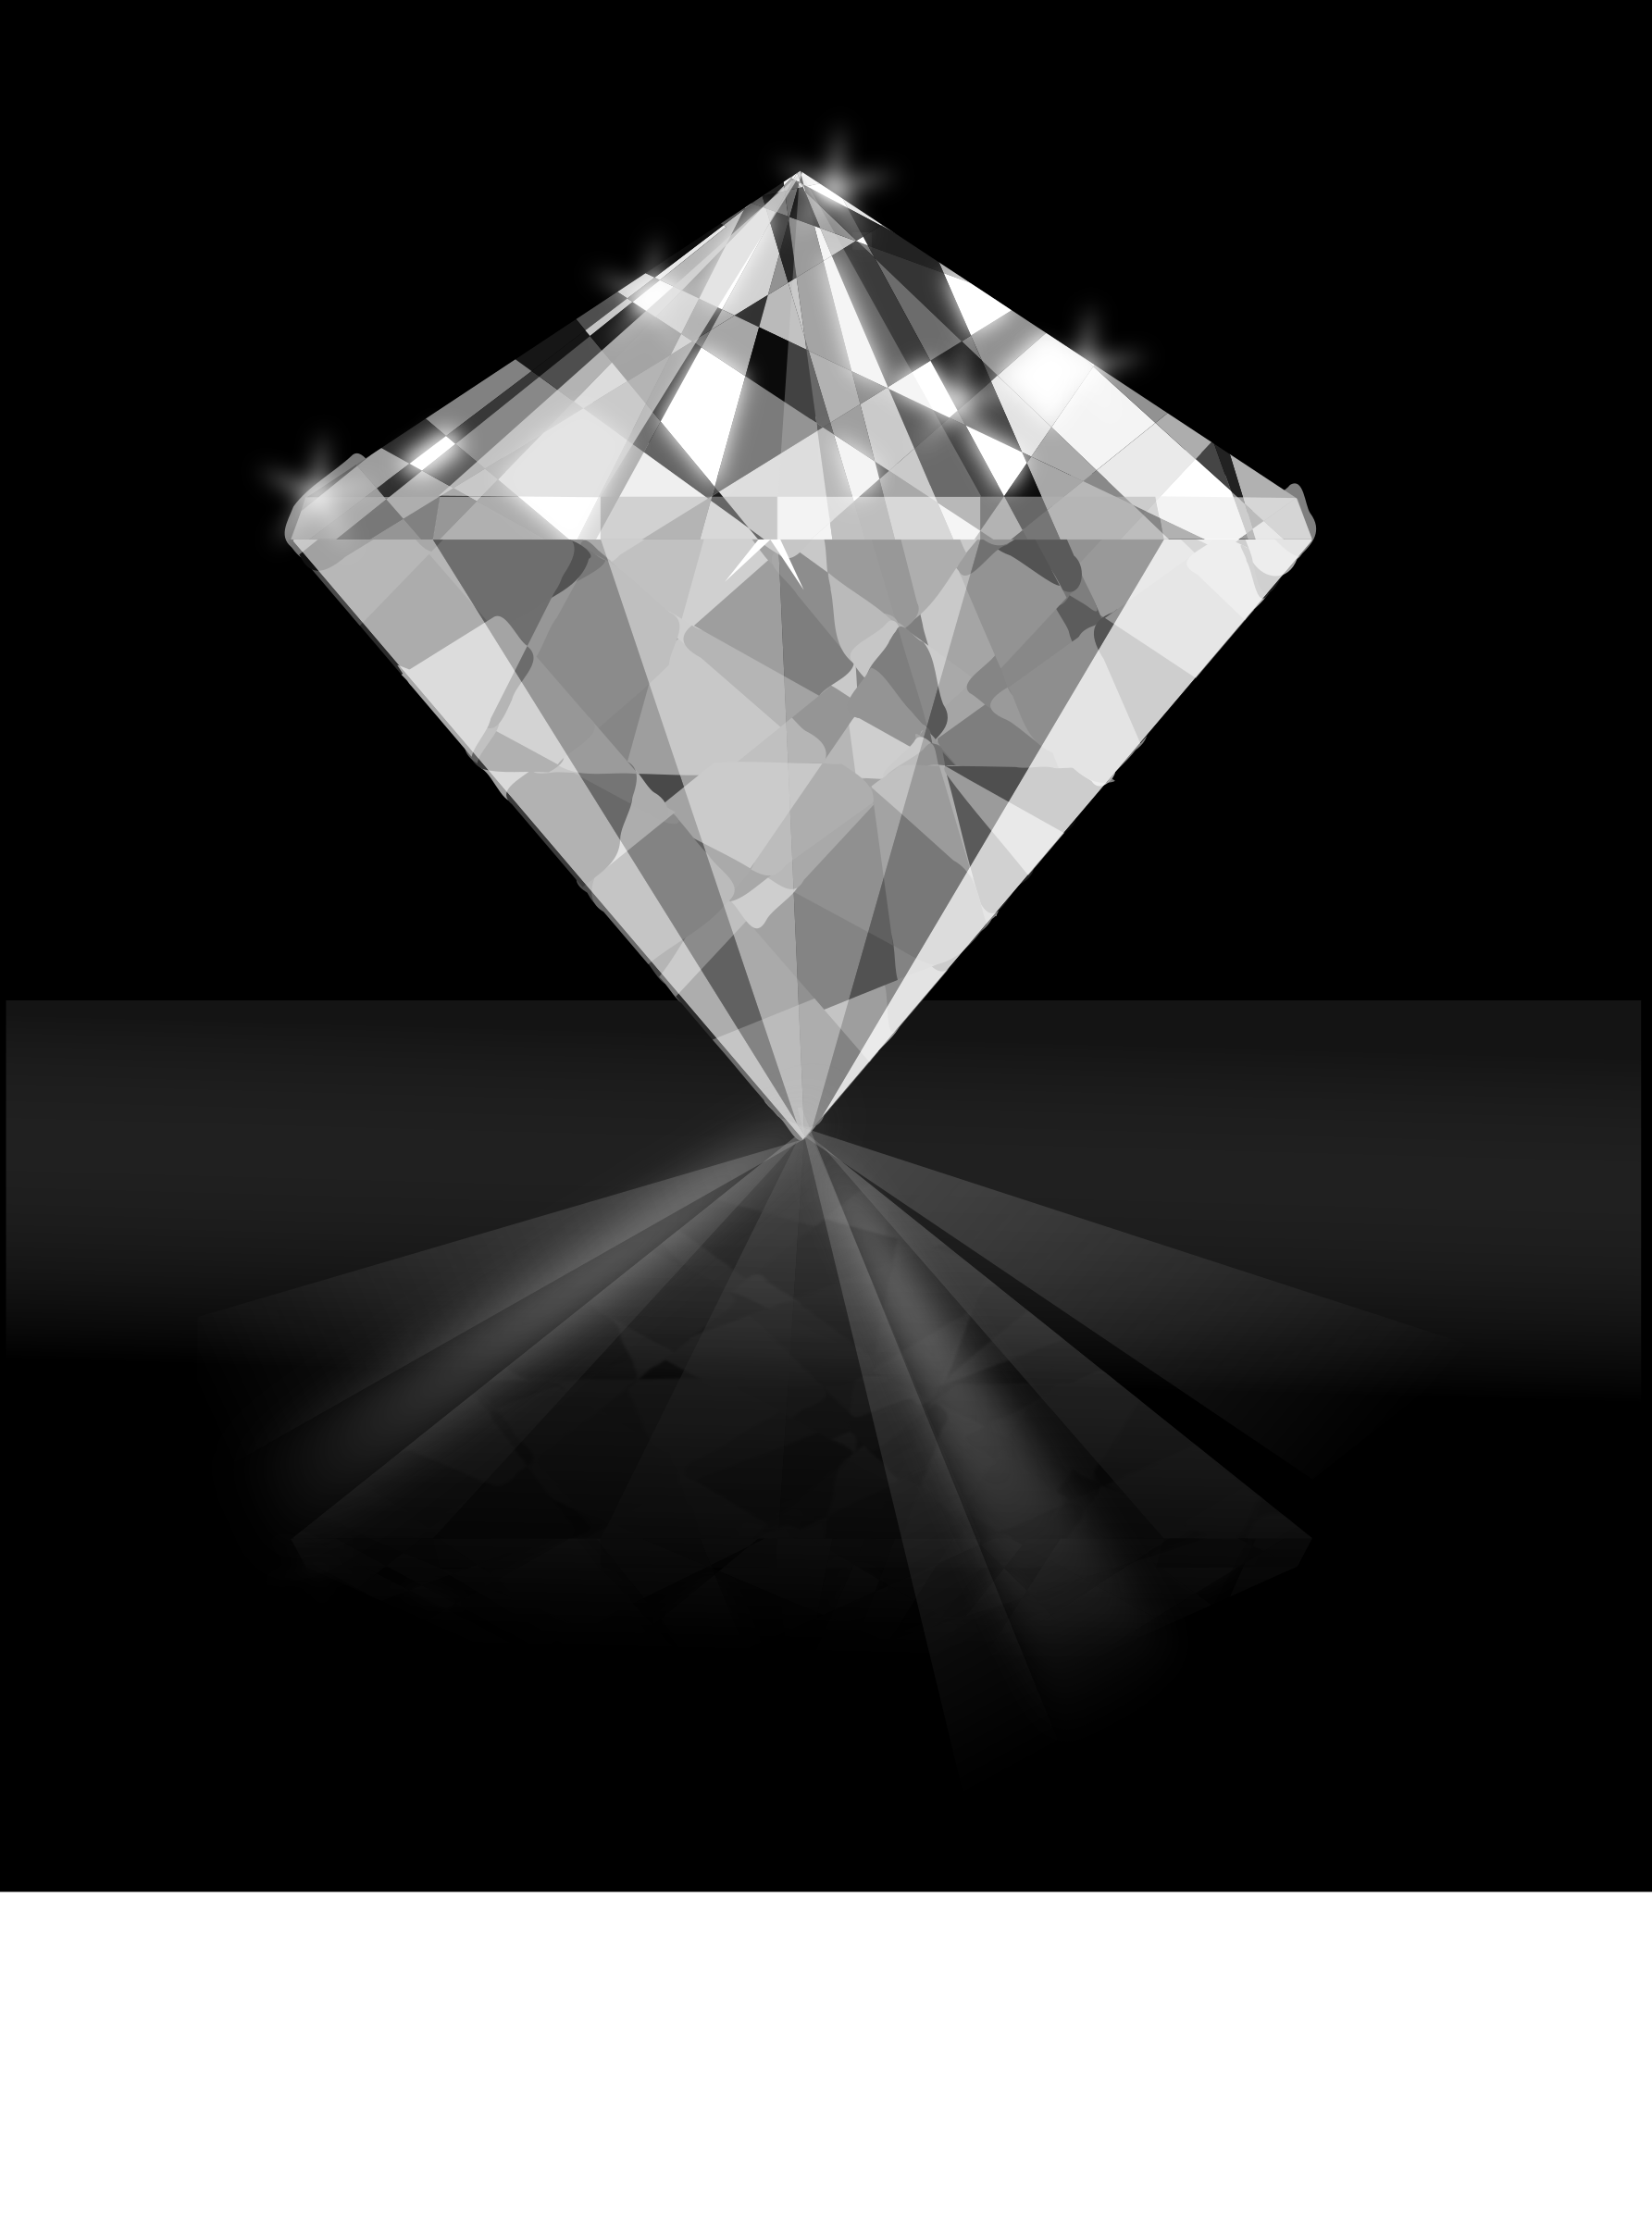 Diamond by Chrisdesign